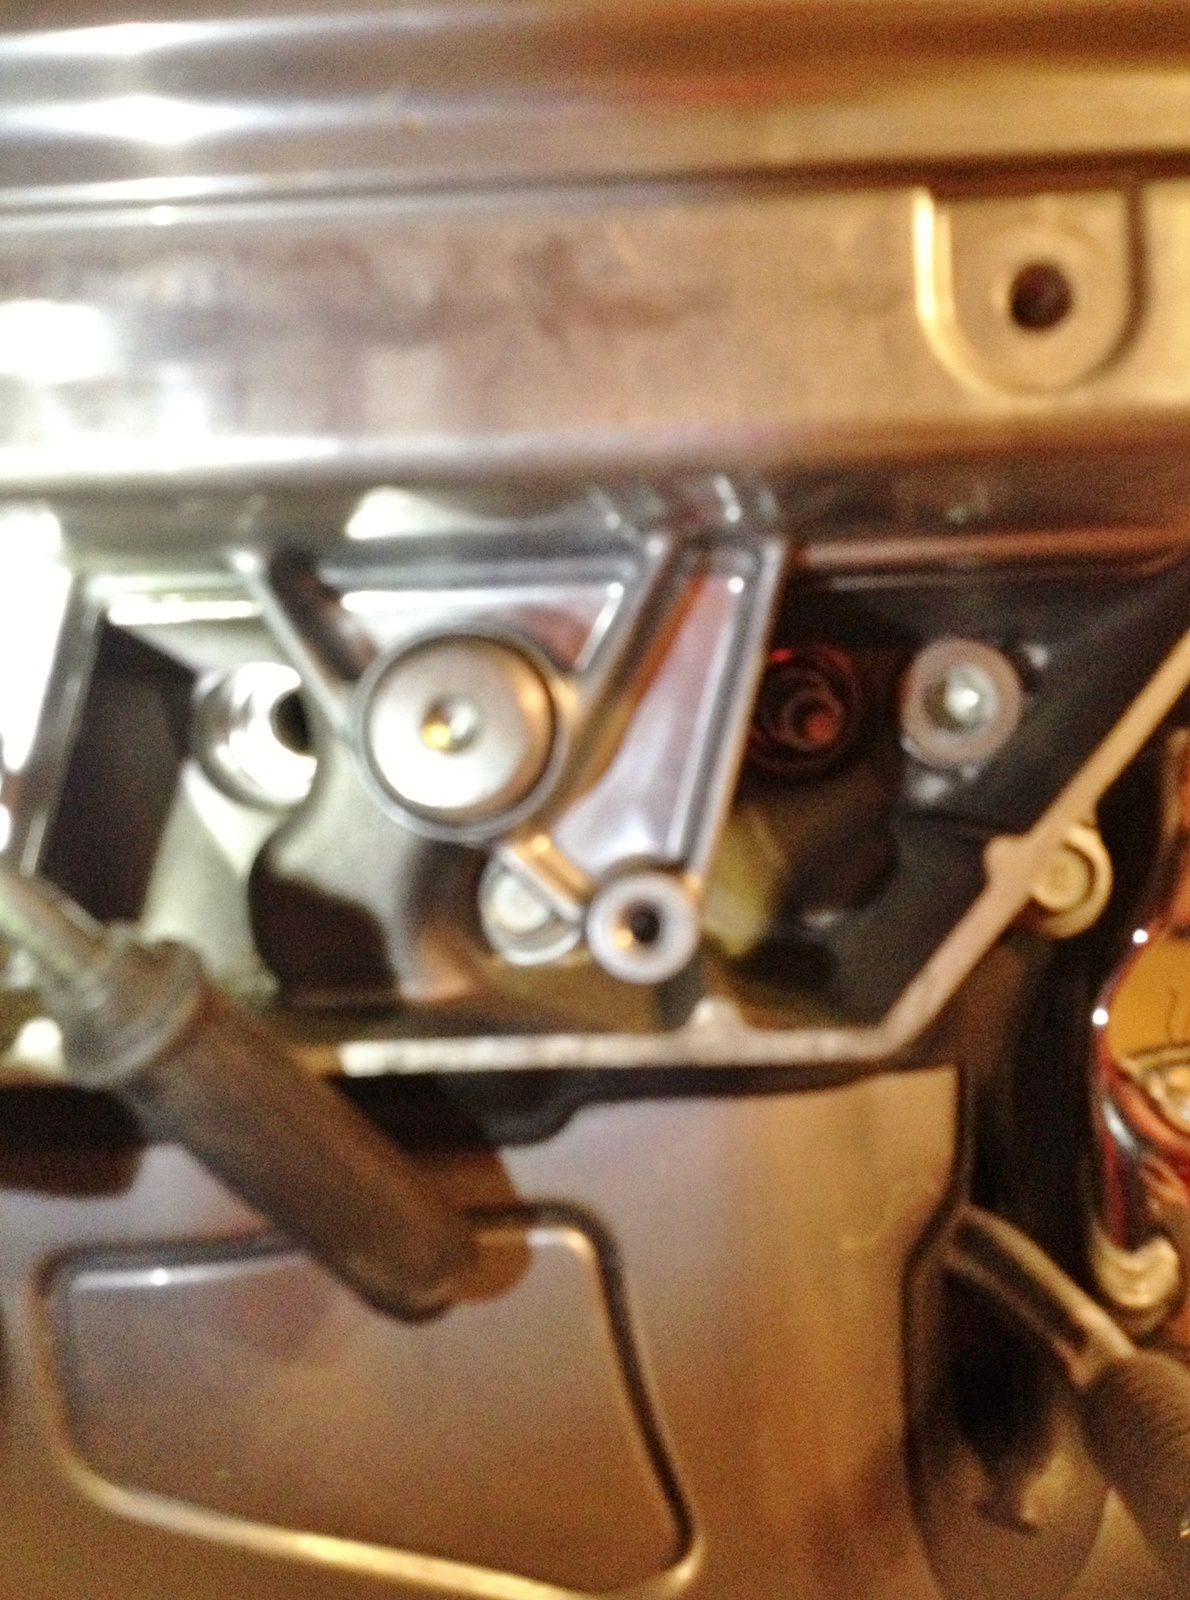 Goldwing - Changer les bougies or change parks plugs goldwing 1800